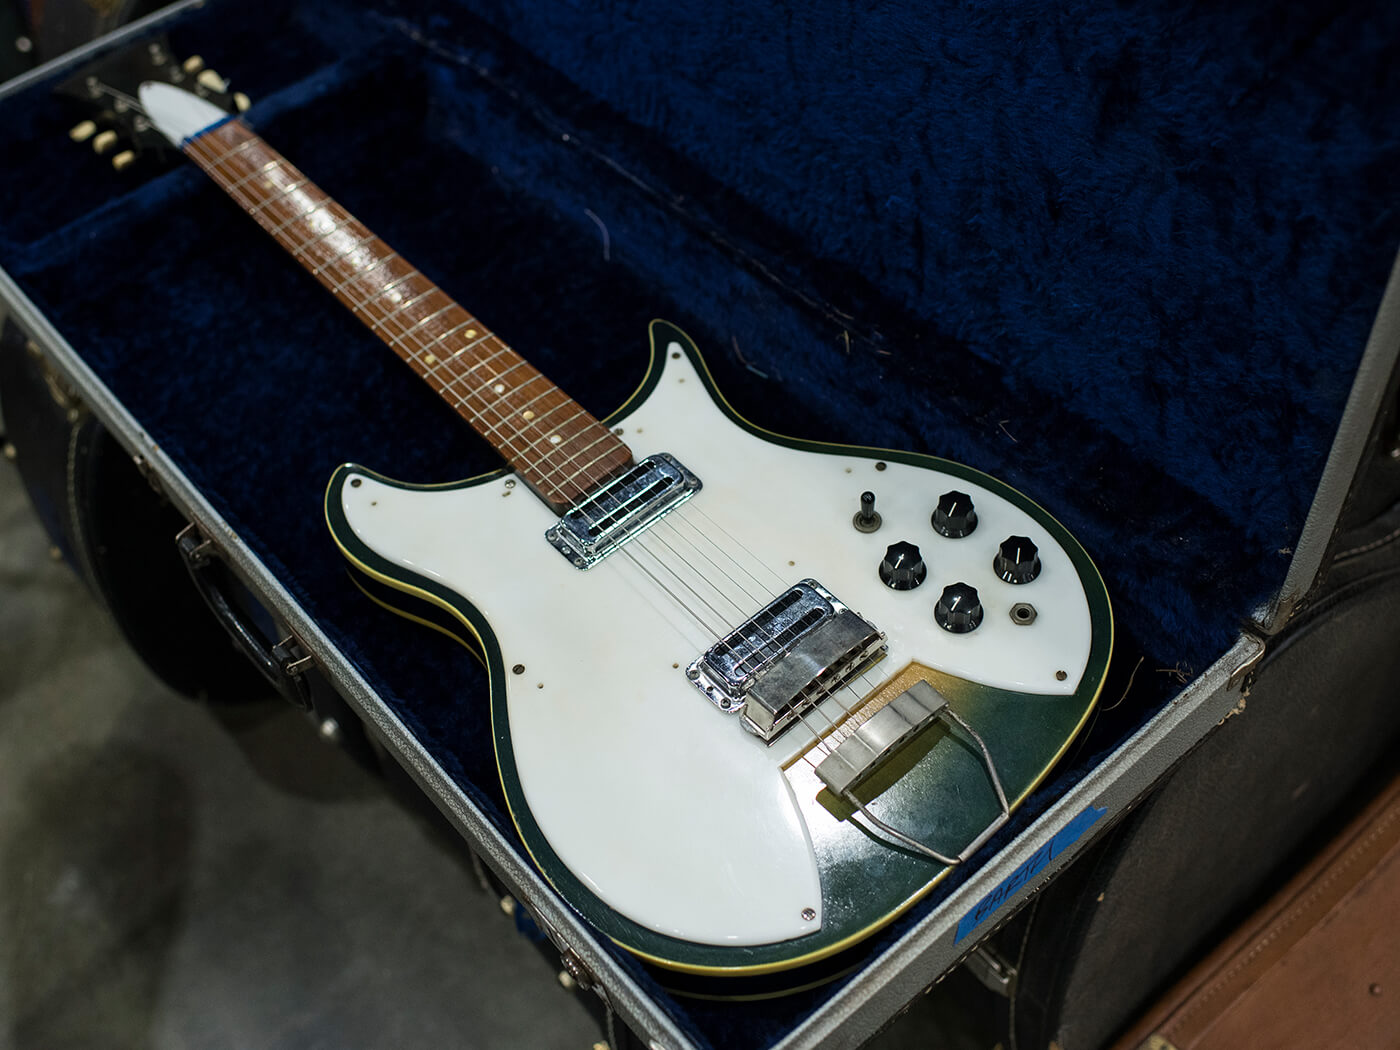 Rickenbacker-esque guitar that was made by Paul Barth